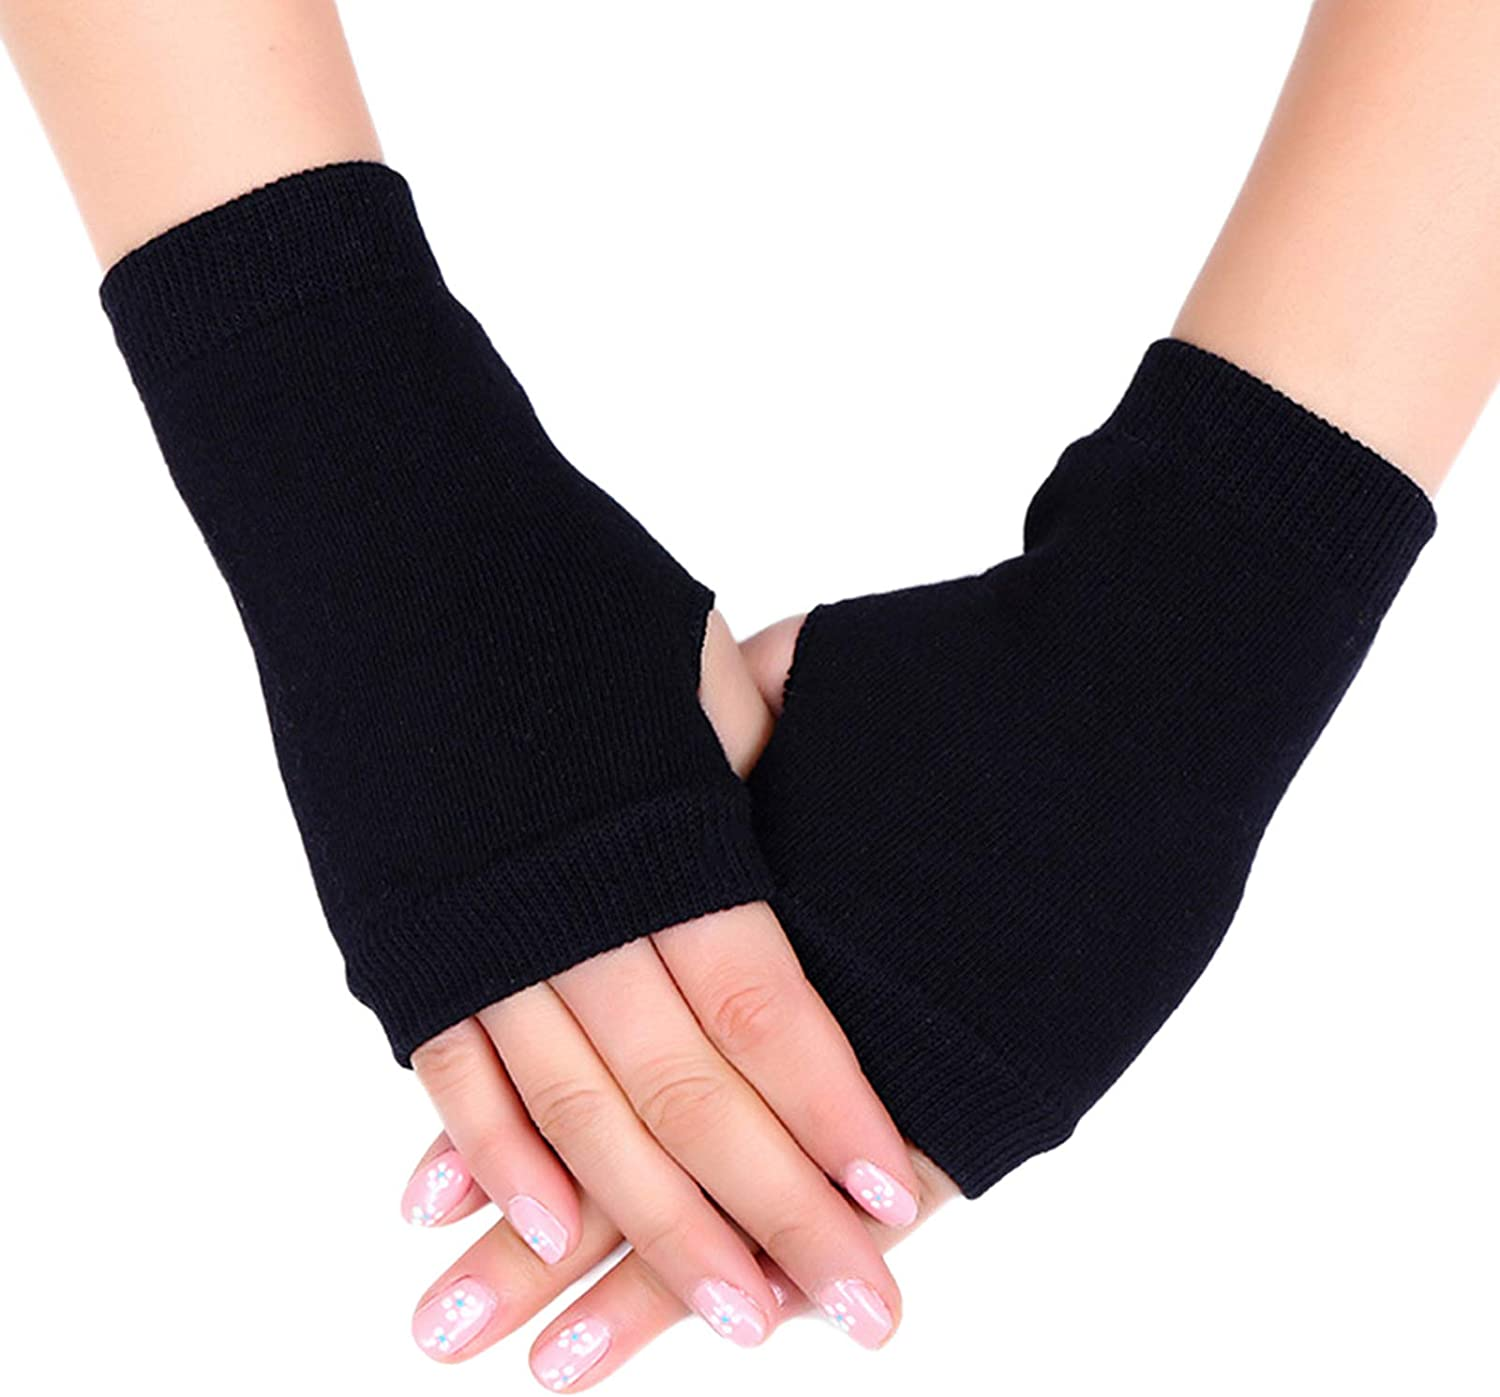 Unisex Gloves Cotton Knitted Stretchy Warm Fingerless Glove Solid Color Thumb Hole Thermal Mittens